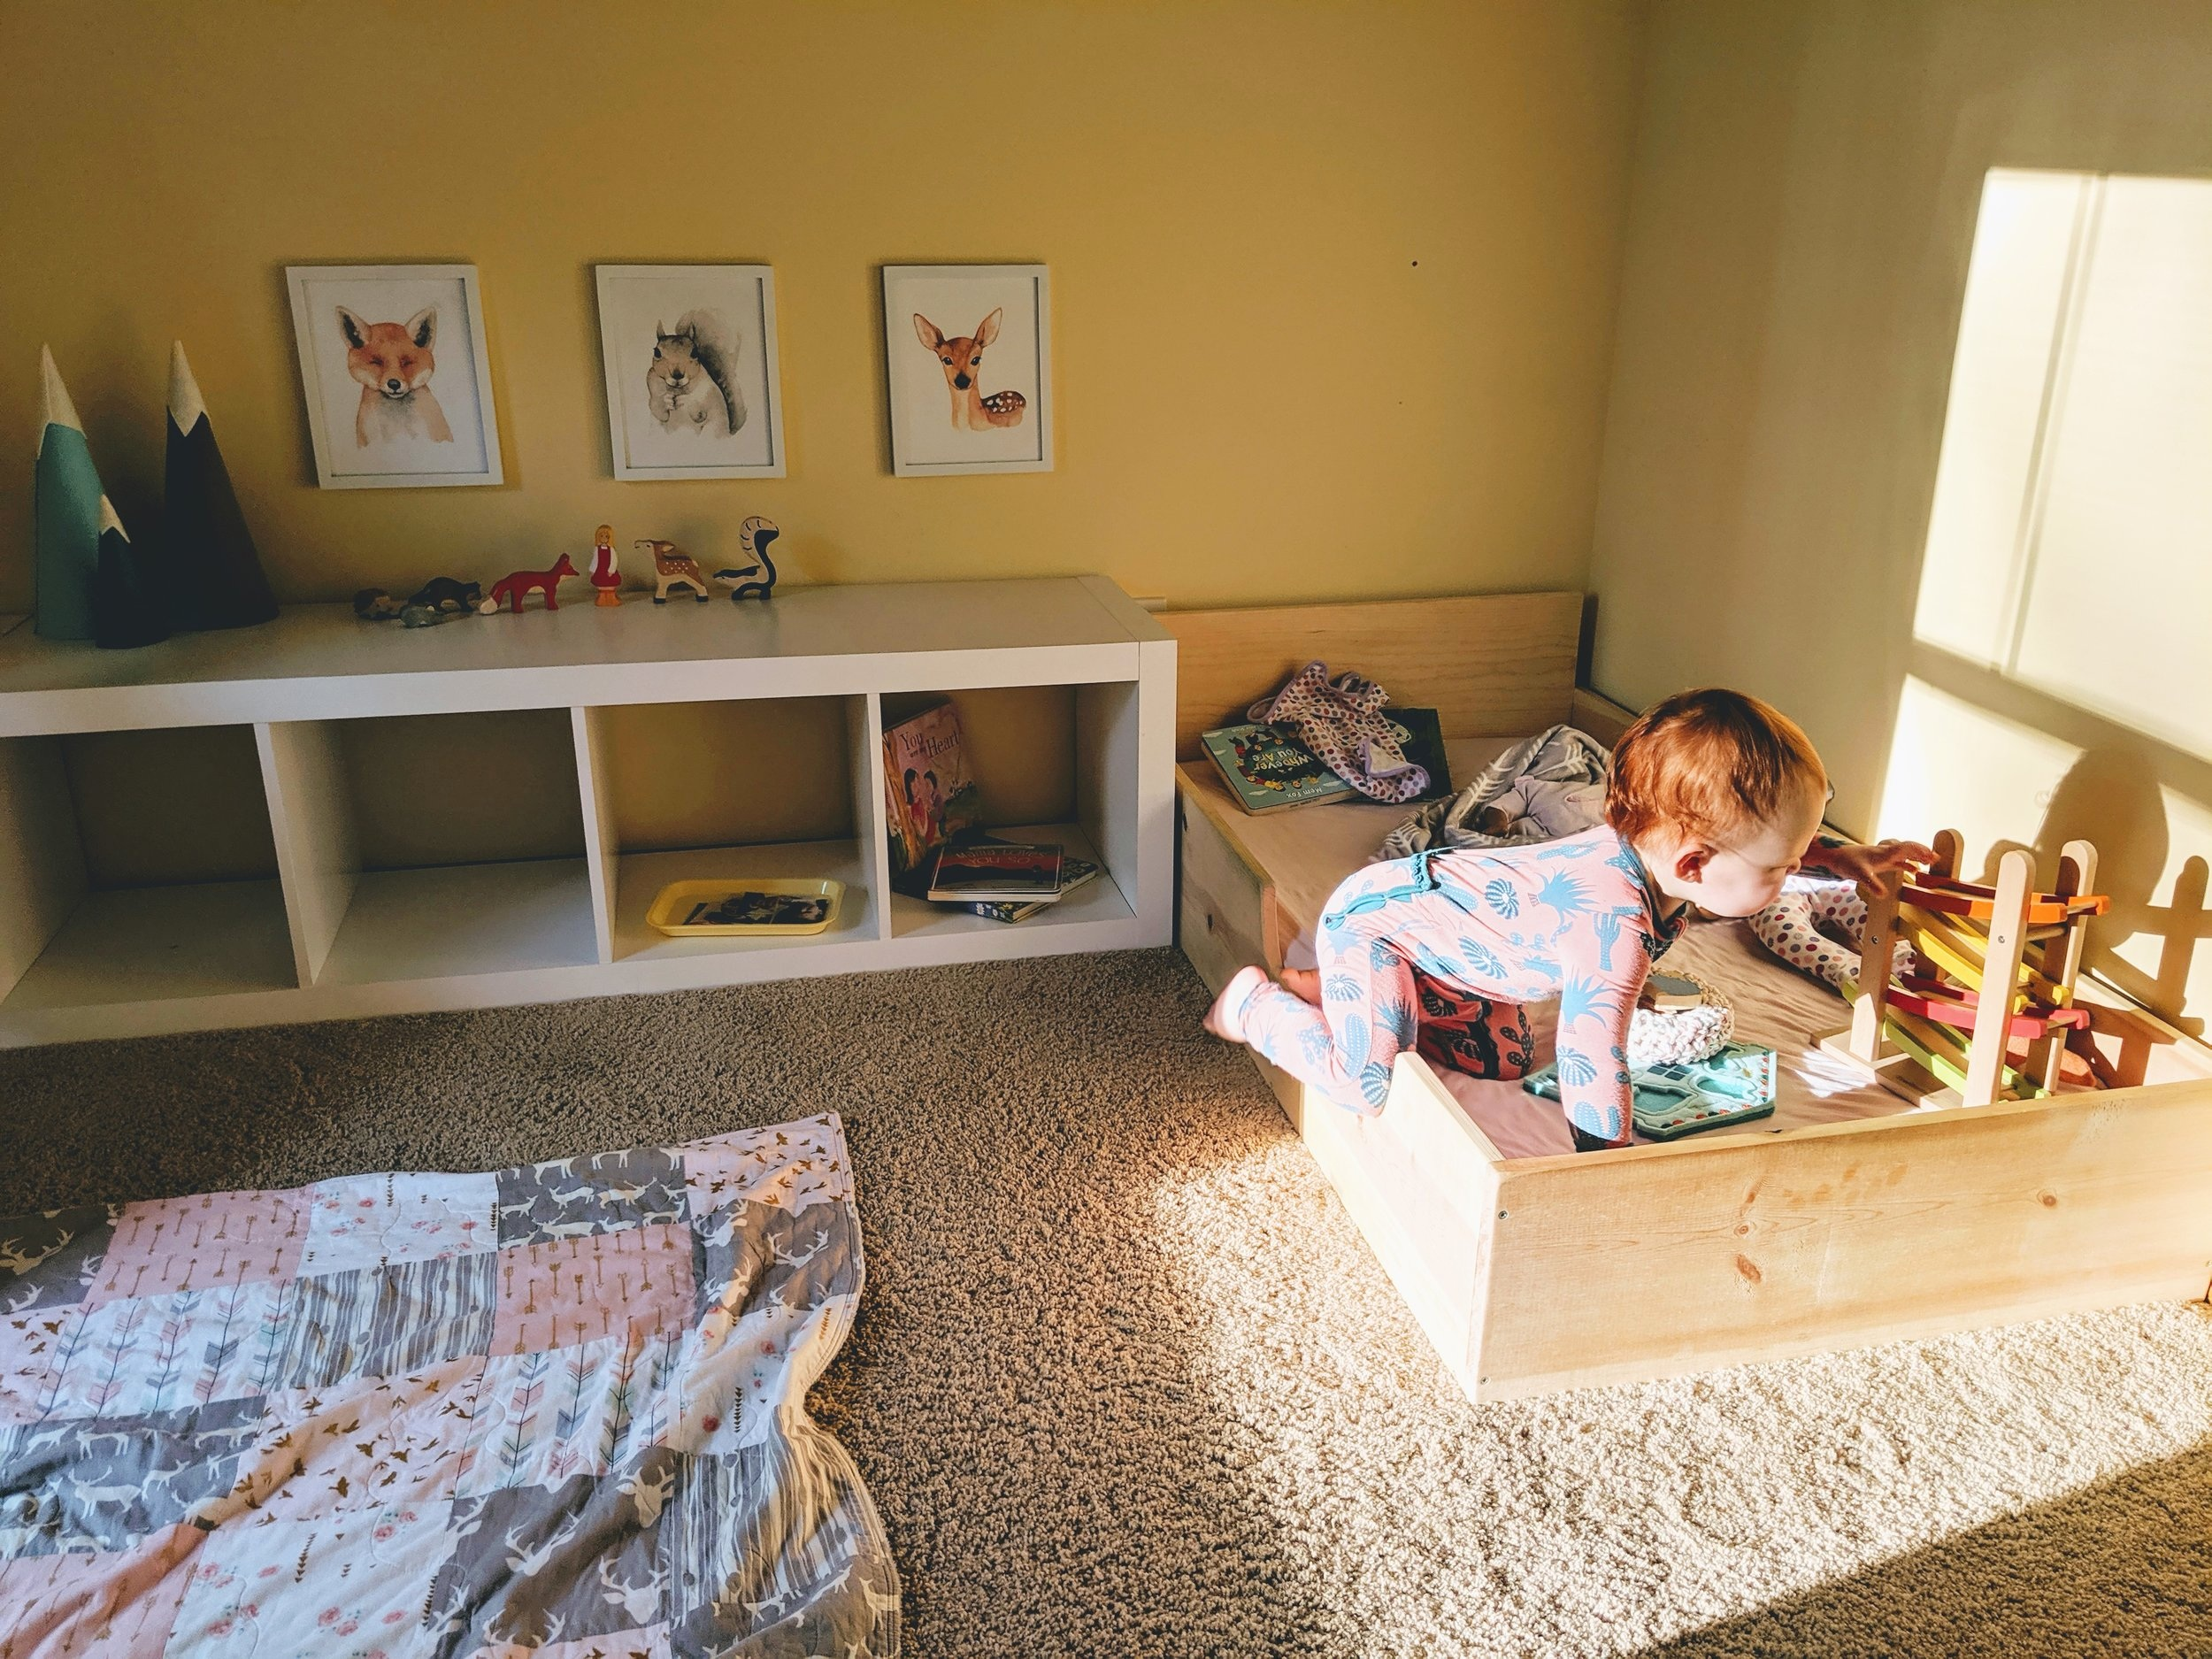 Self-Soothing+and+the+Montessori+Floor+Bed+-+Montessori+in+Real+Life